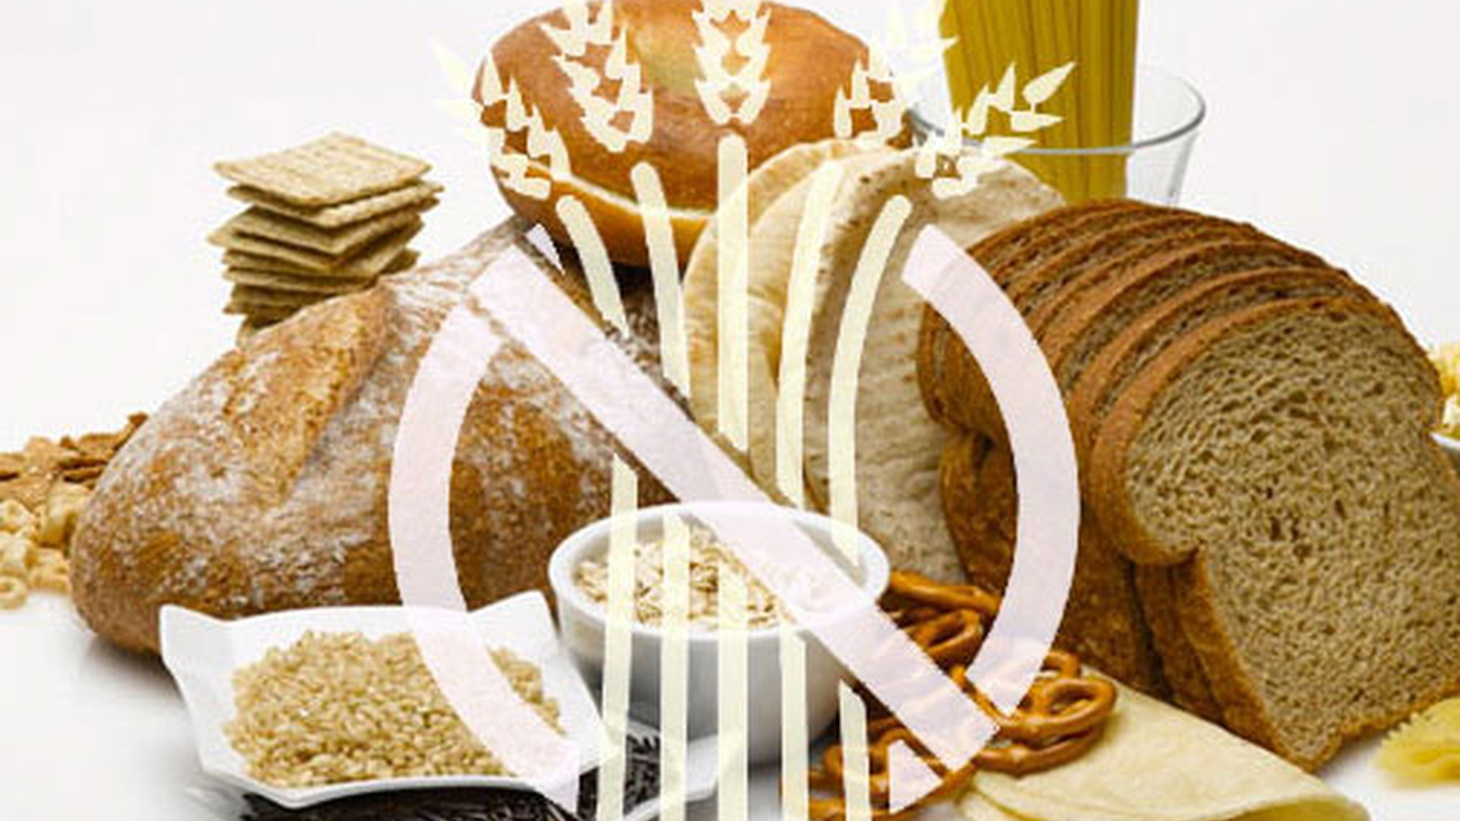 """""""Gluten-free"""" has become a $10 billion industry, but does avoiding gluten really make you healthier? We hear about food fads and new diagnoses."""